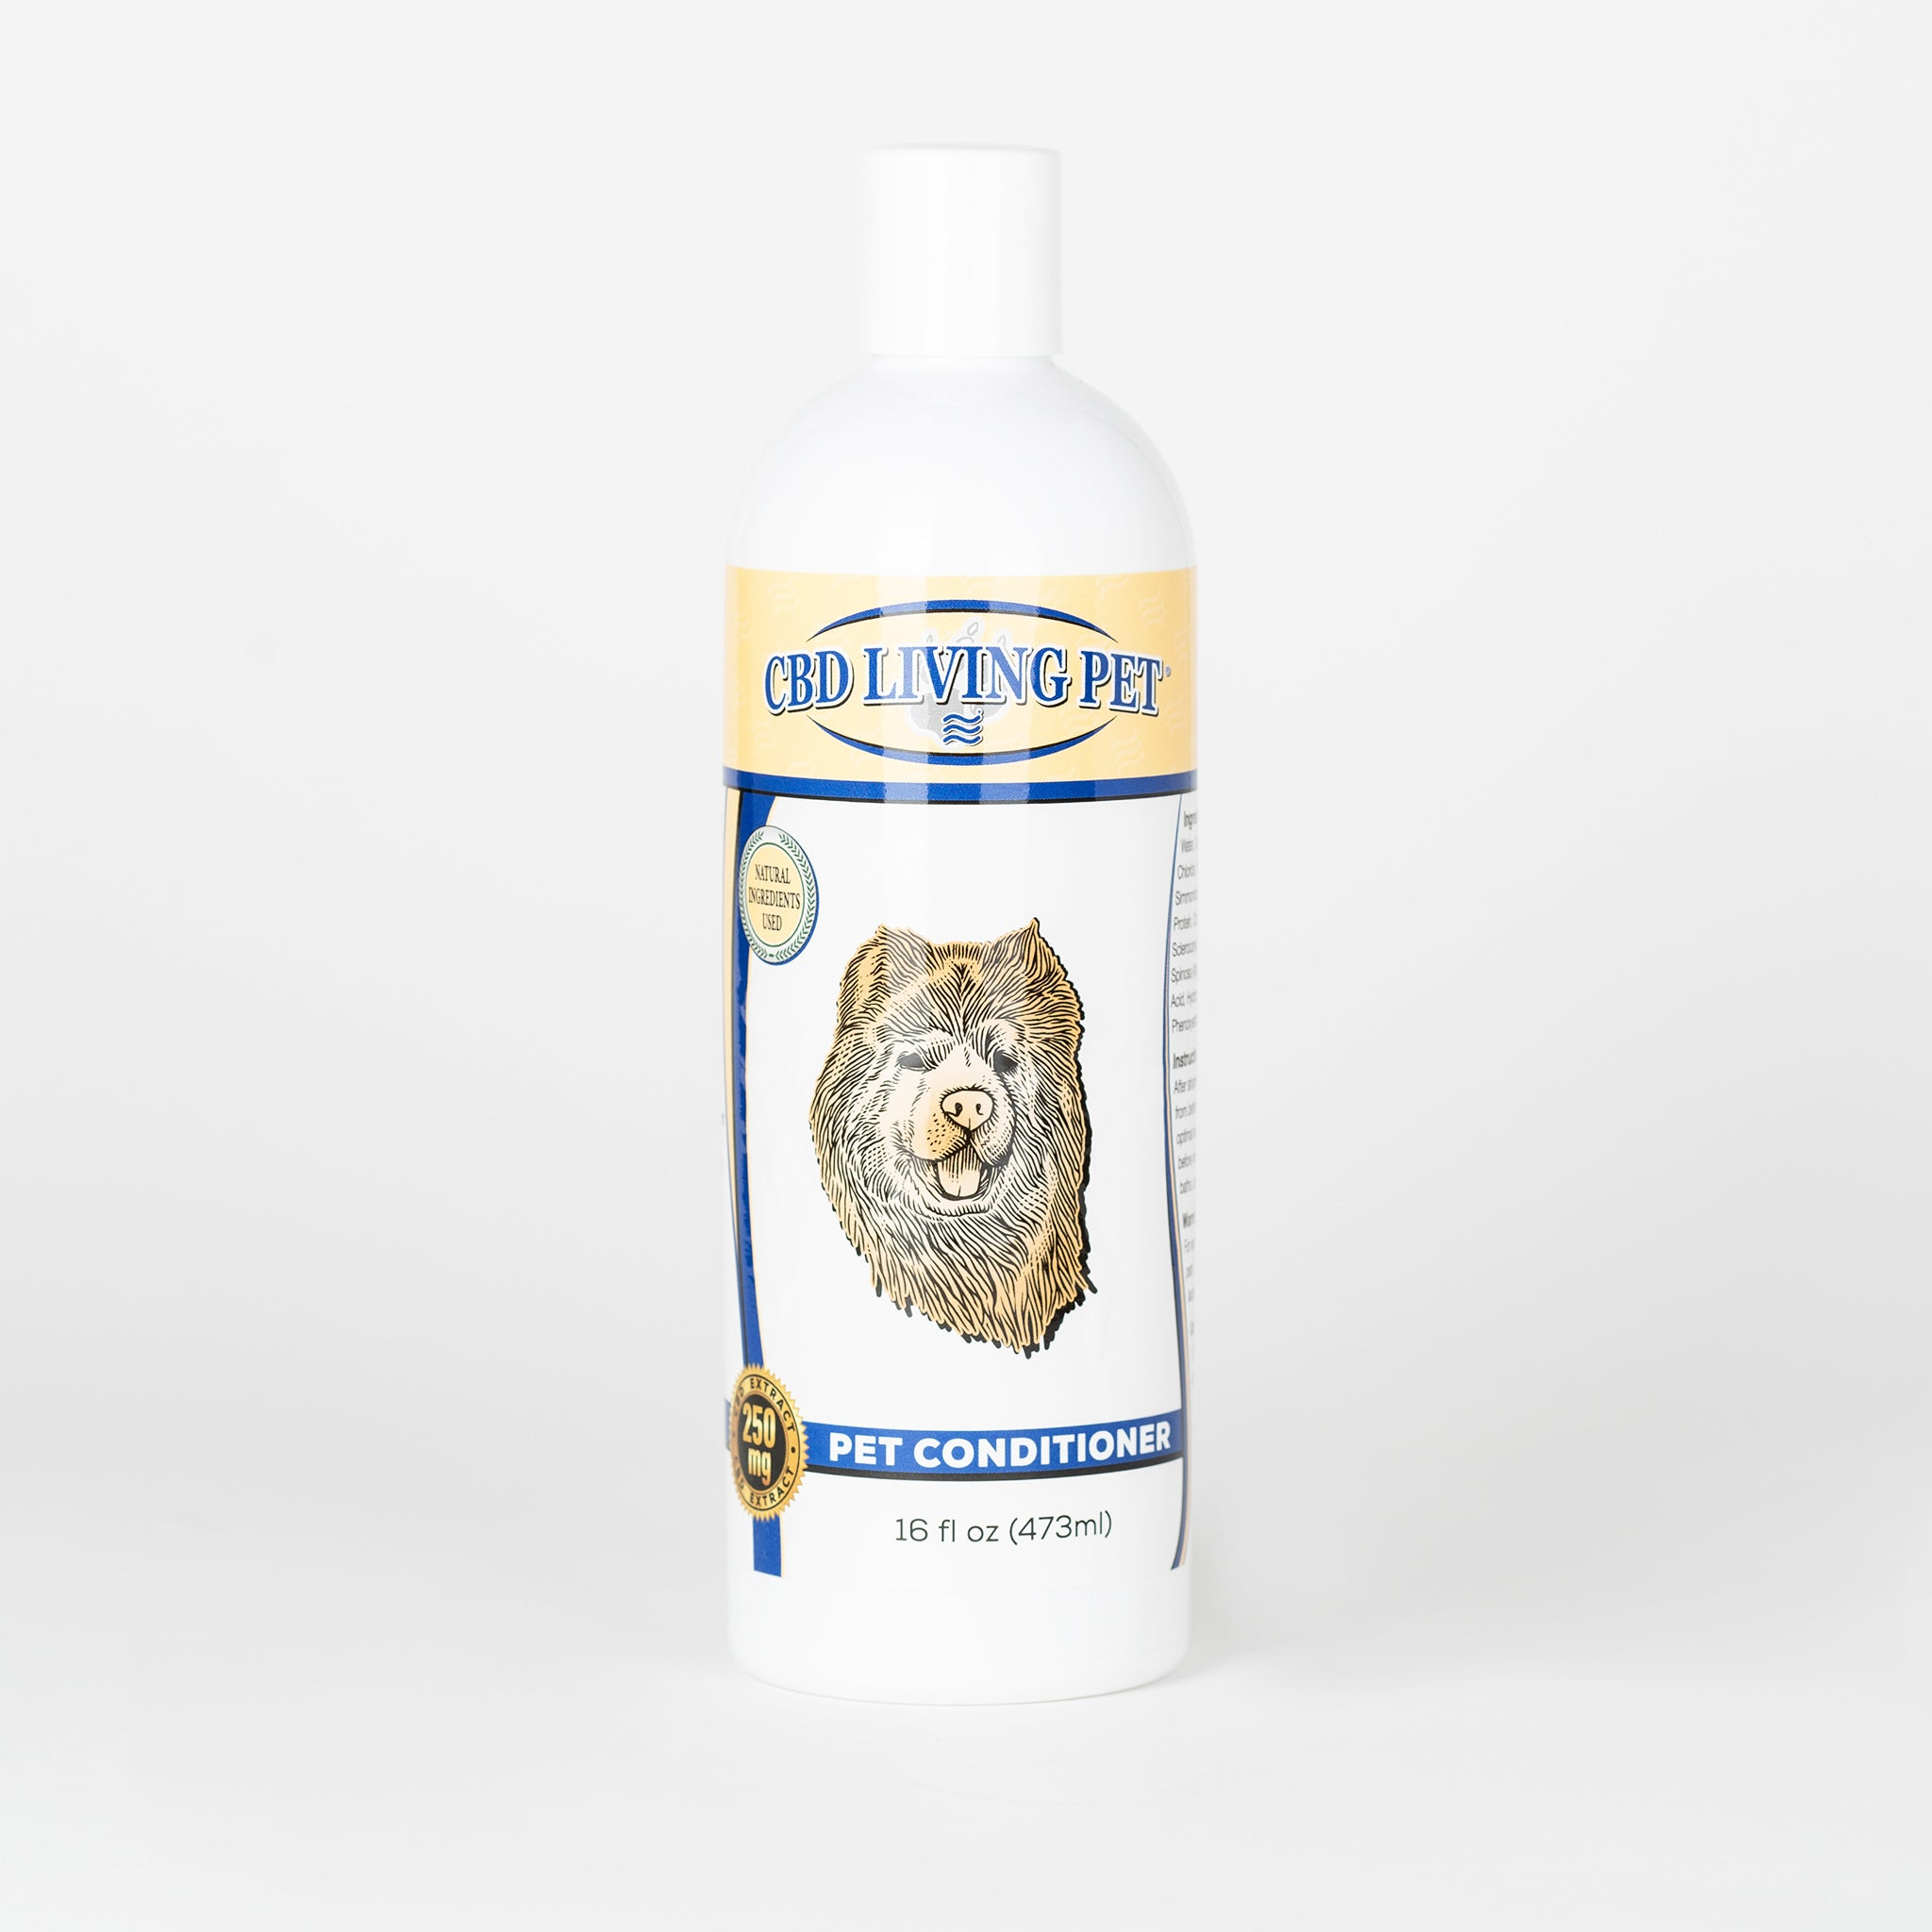 CBD Living Pet Conditioner - Alleviate Wellness